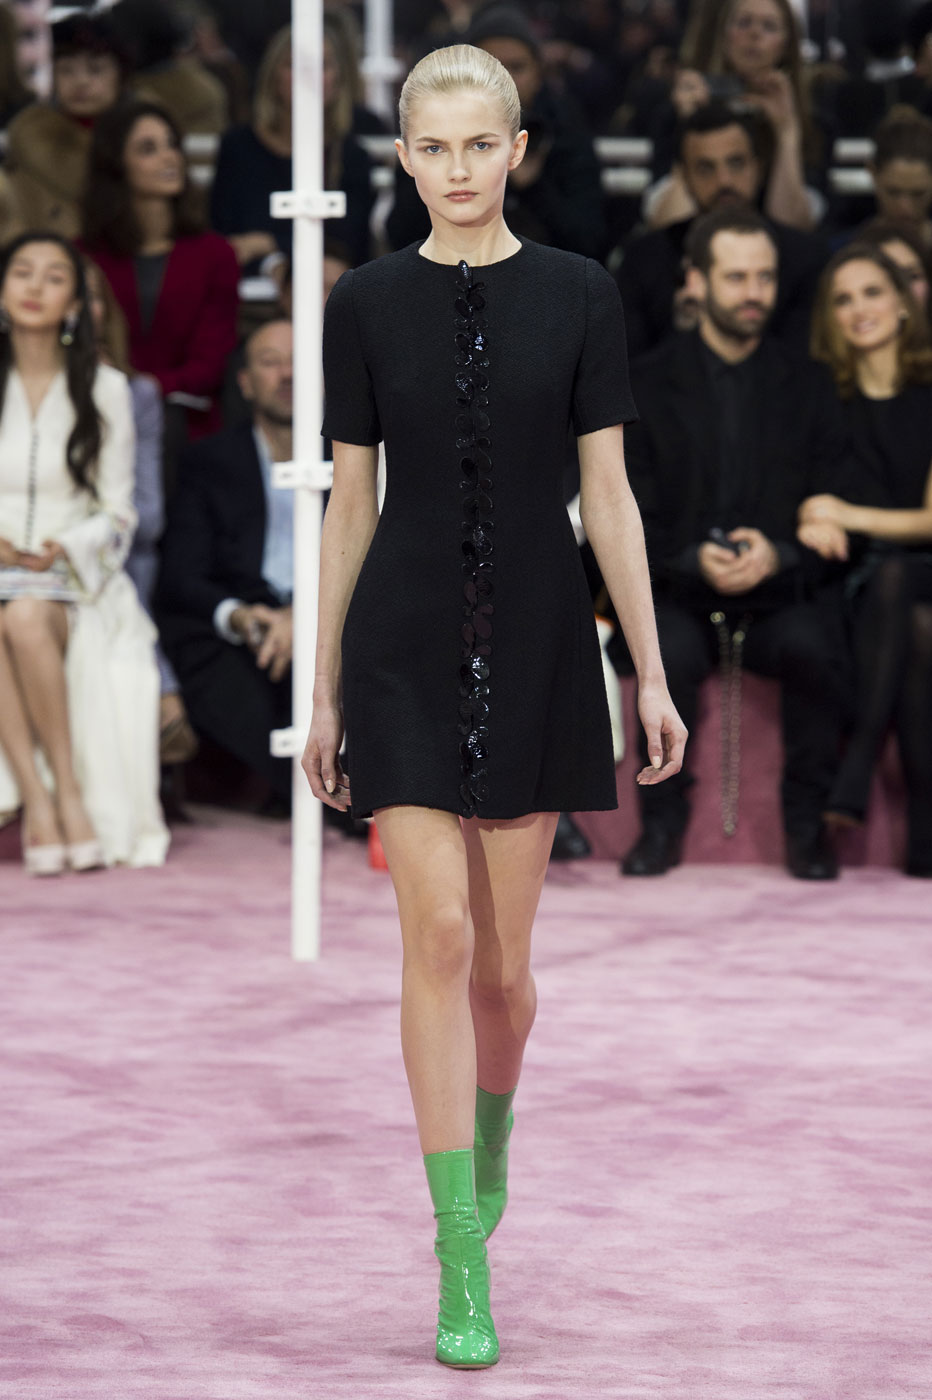 Christian-Dior-fashion-runway-show-haute-couture-paris-spring-summer-2015-the-impression-021